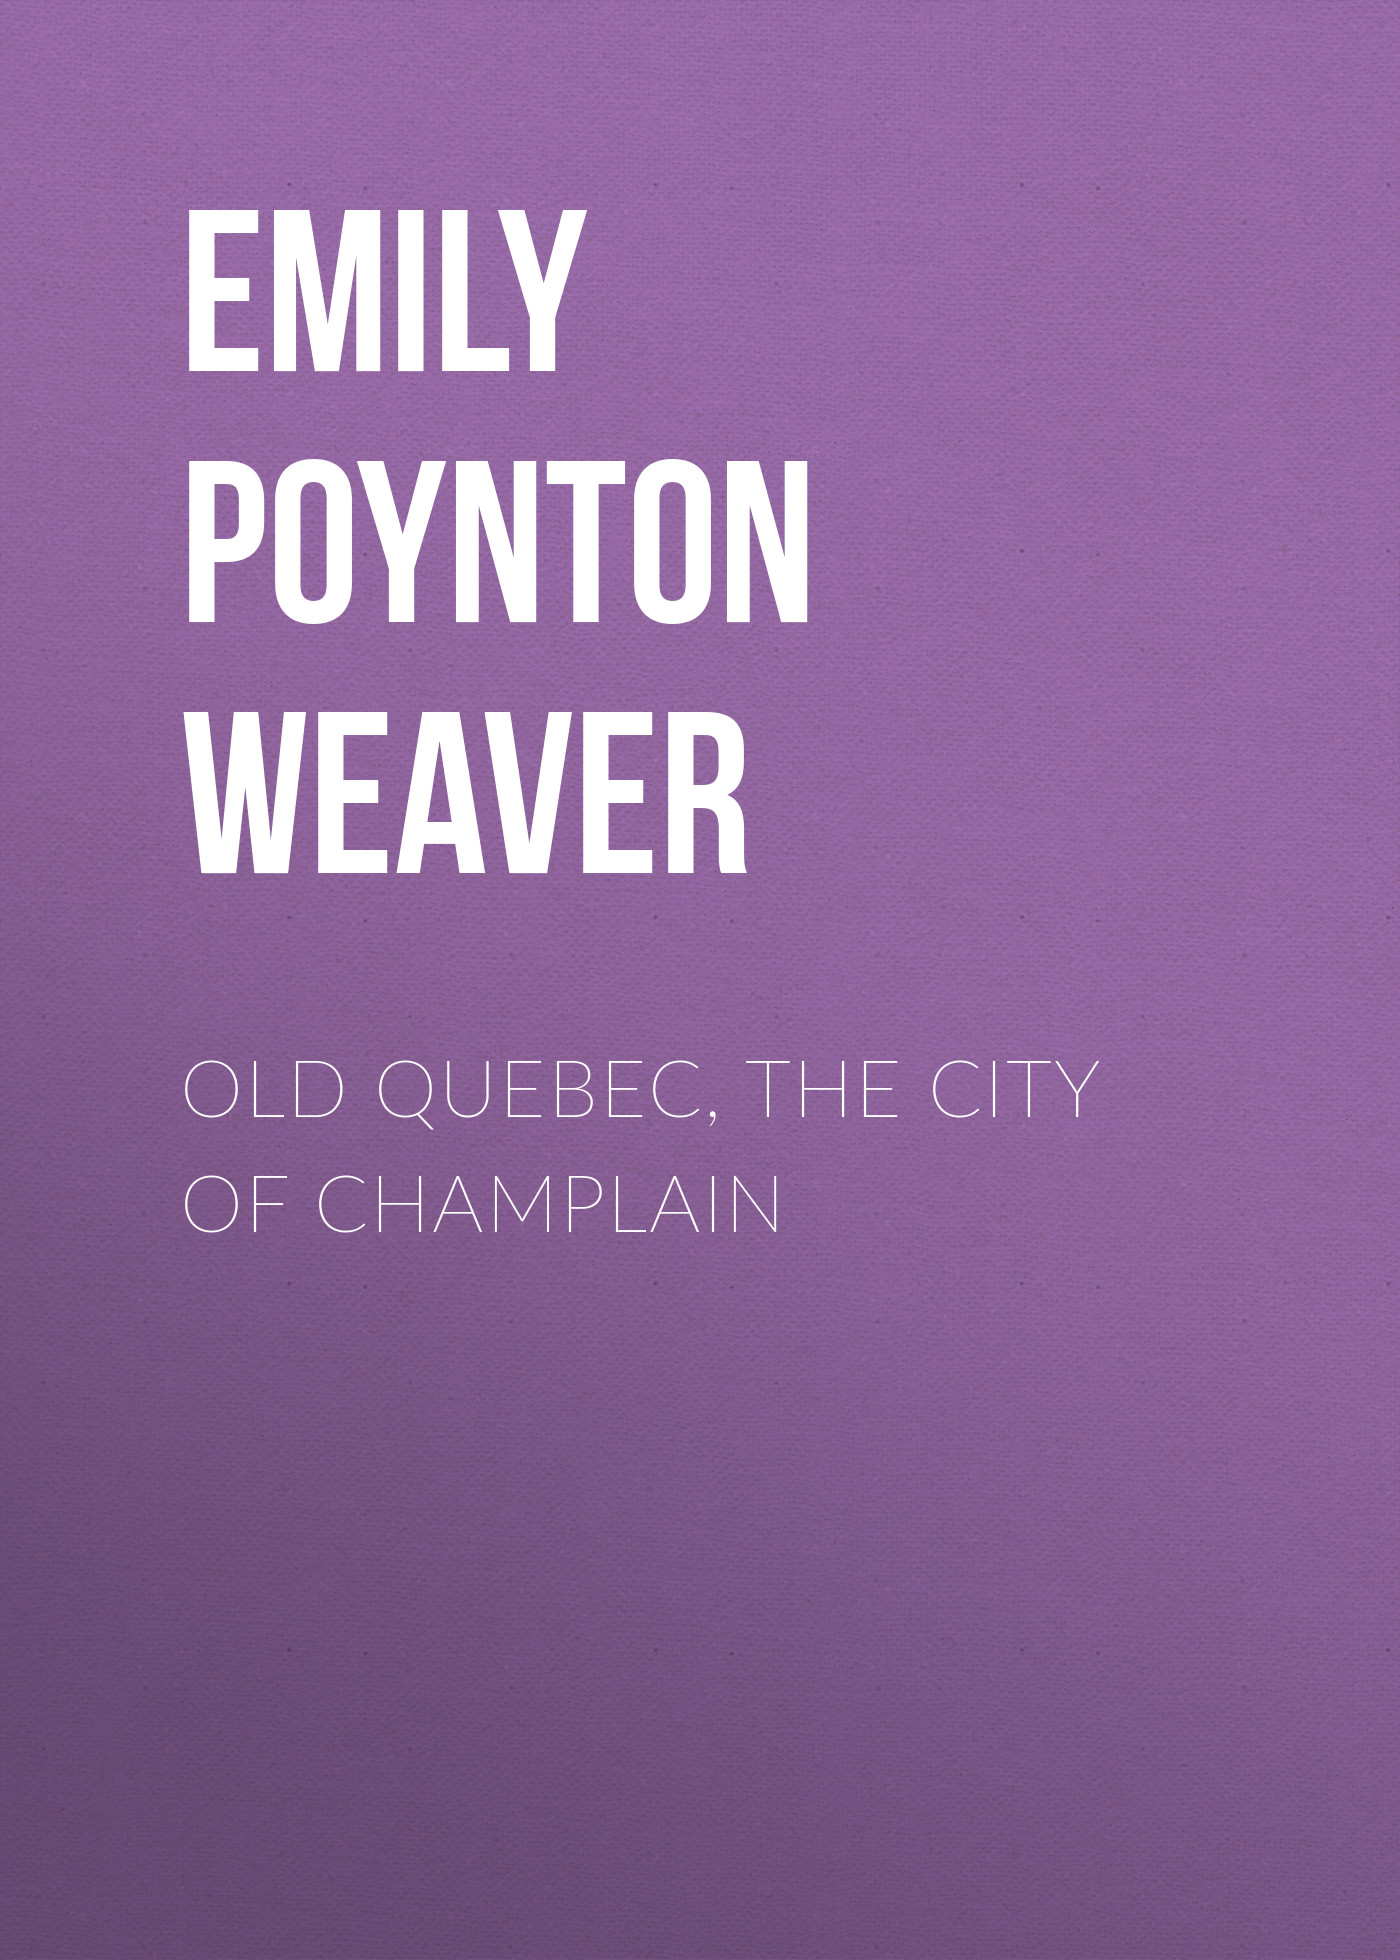 Emily Poynton Weaver Old Quebec, the city of Champlain ingrid weaver eye of the beholder